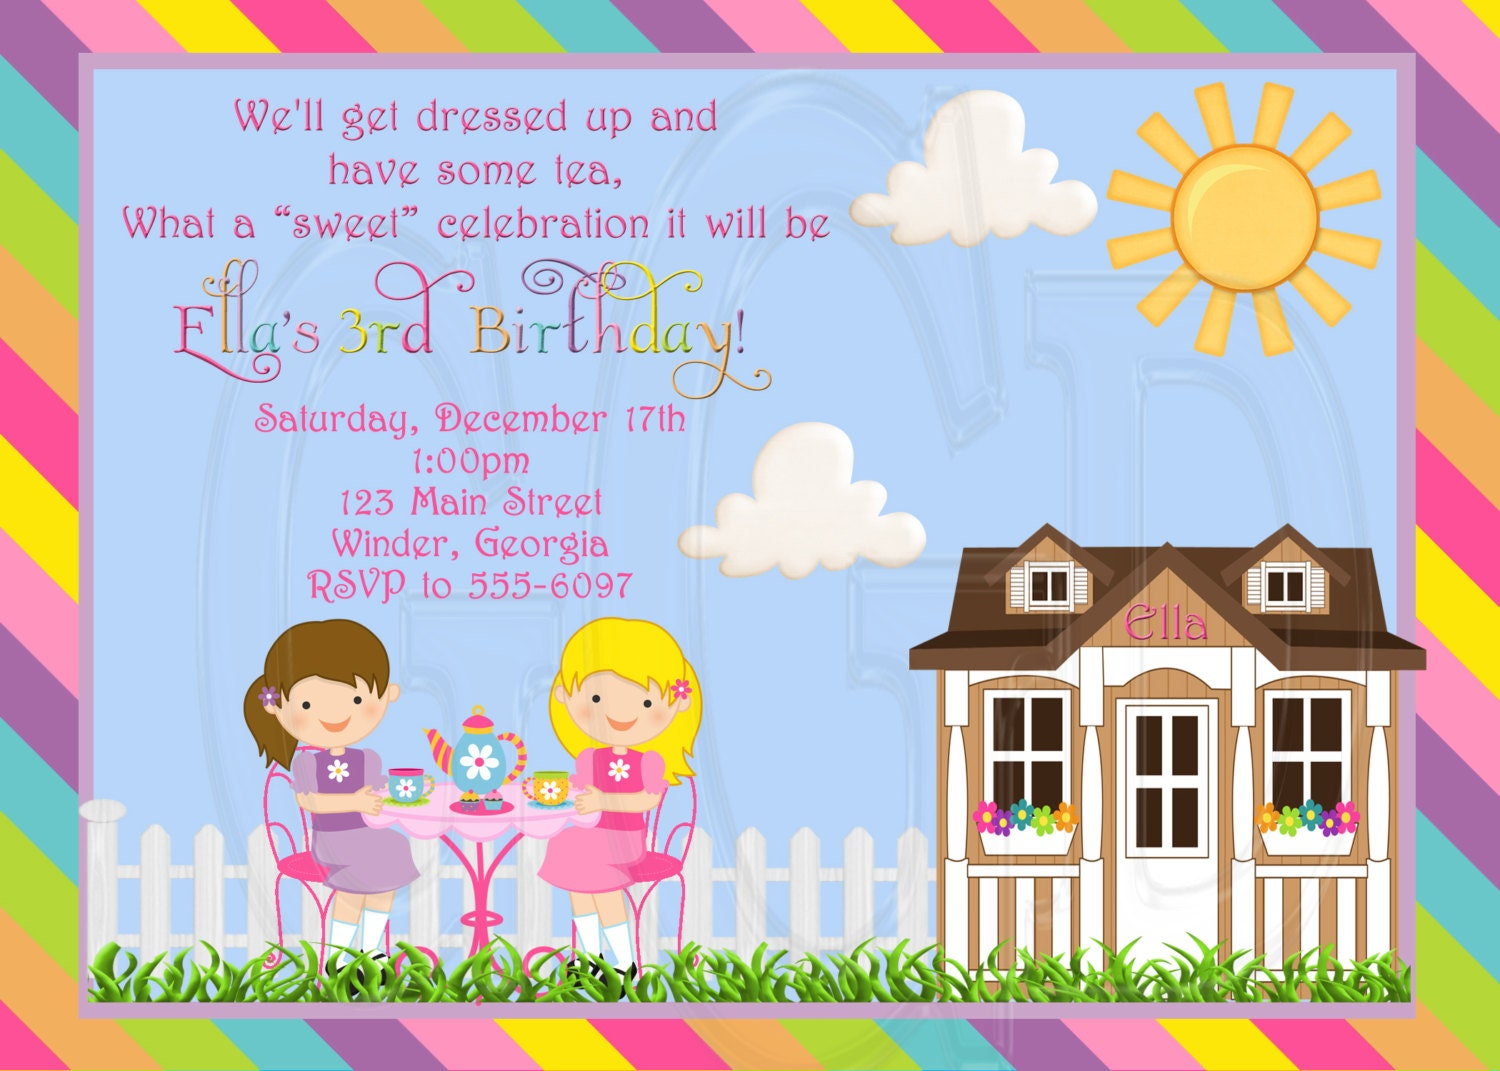 Dress Up Party - Kids Party Planning Ideas from Birthday ...